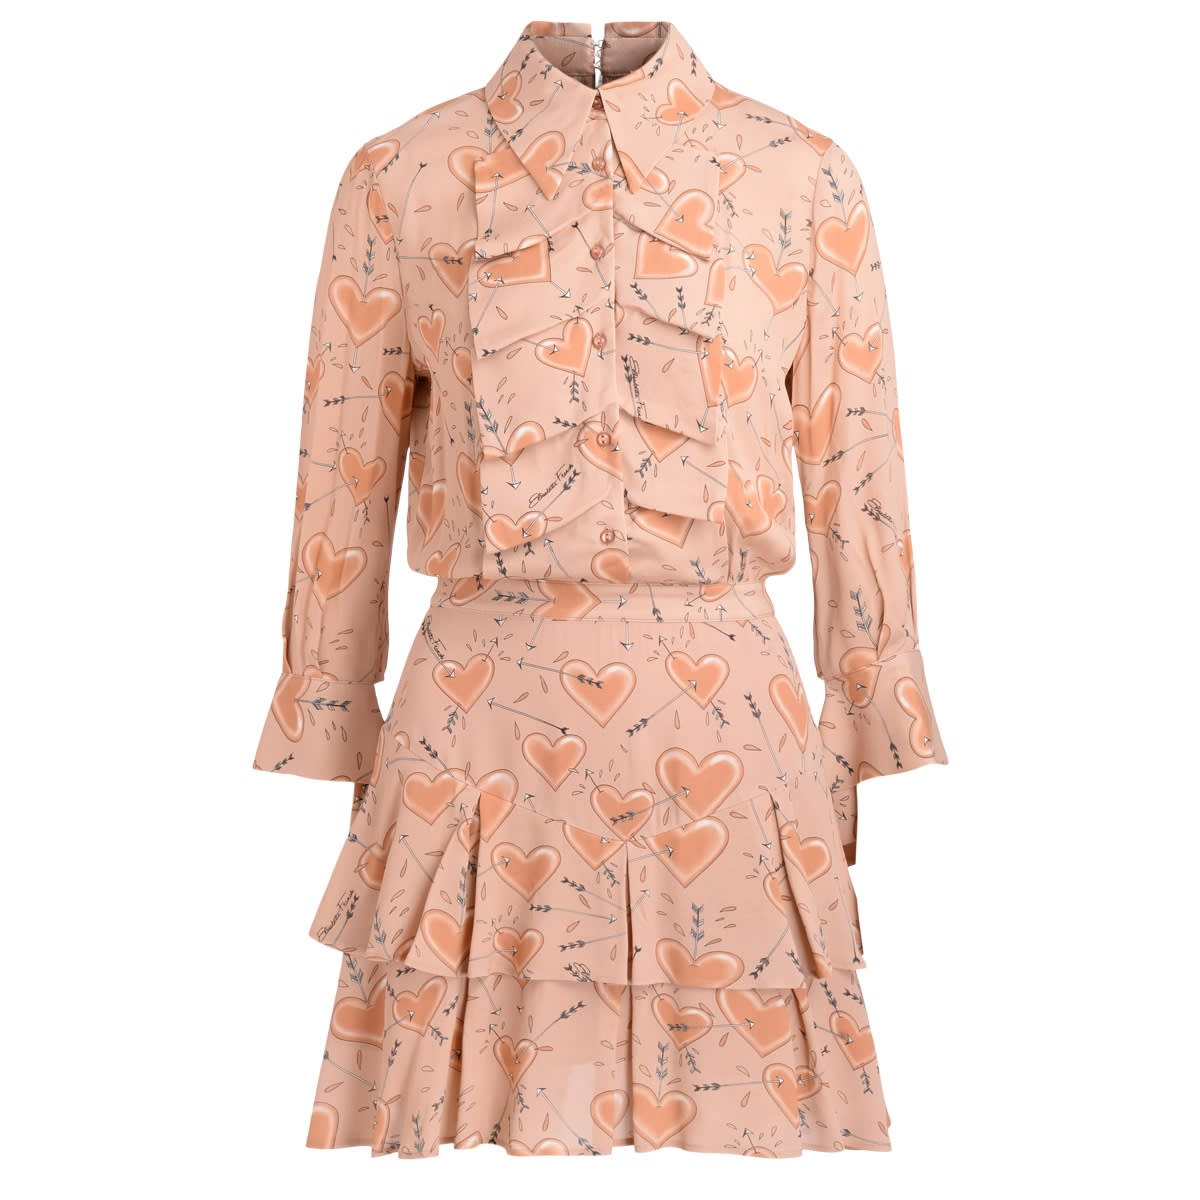 Dress Elisabetta Franchi In Pink Blush With Heart Shaped Print